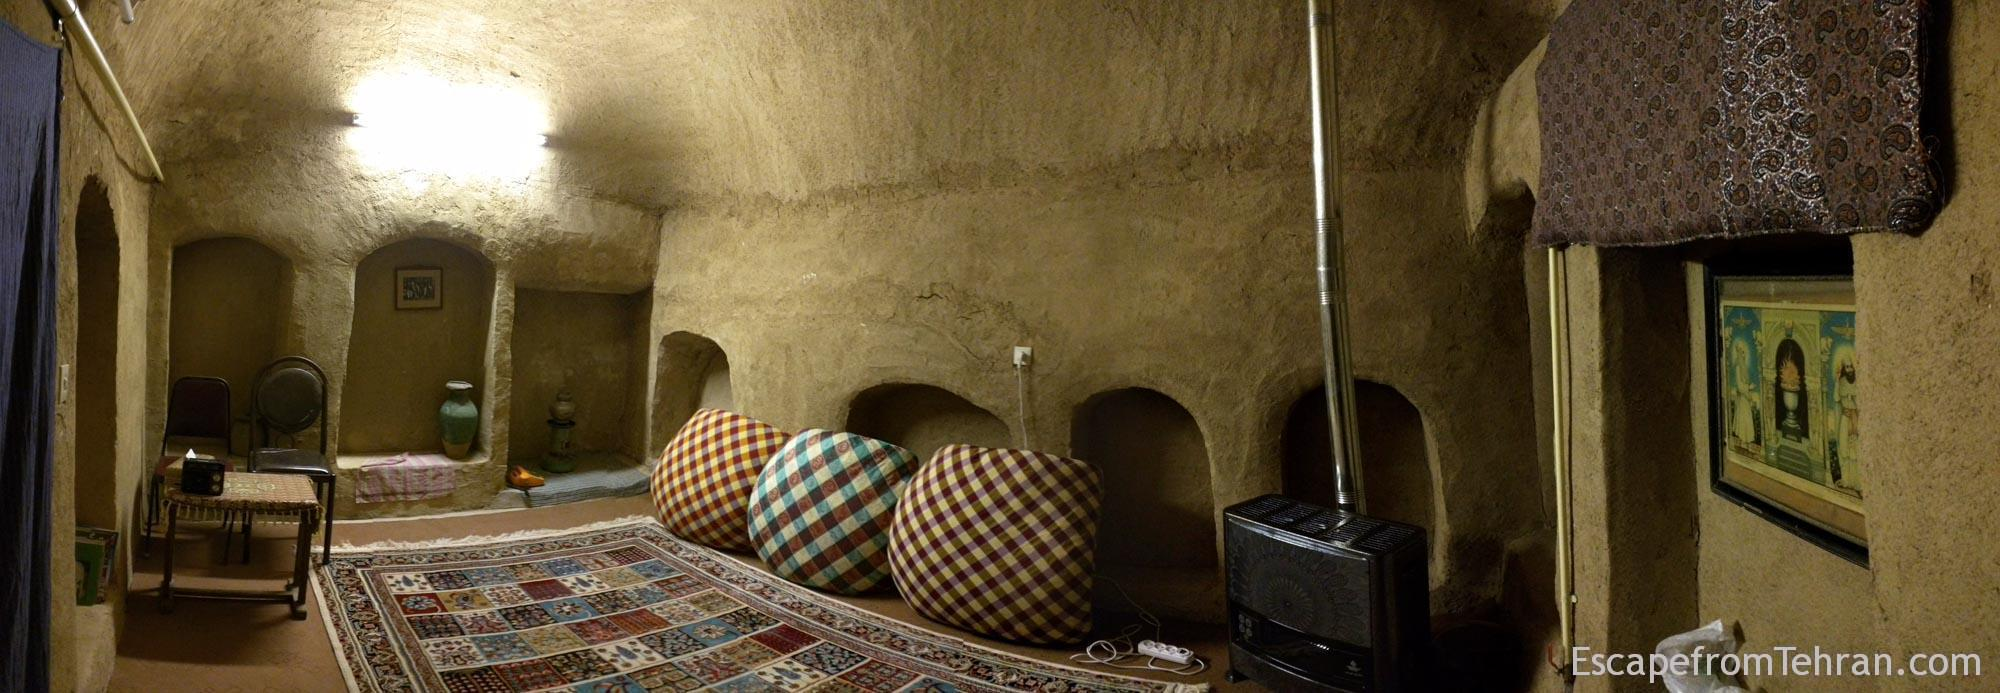 Our room at Nartitee Ecolodge, Taft, Yazd Province, Iran